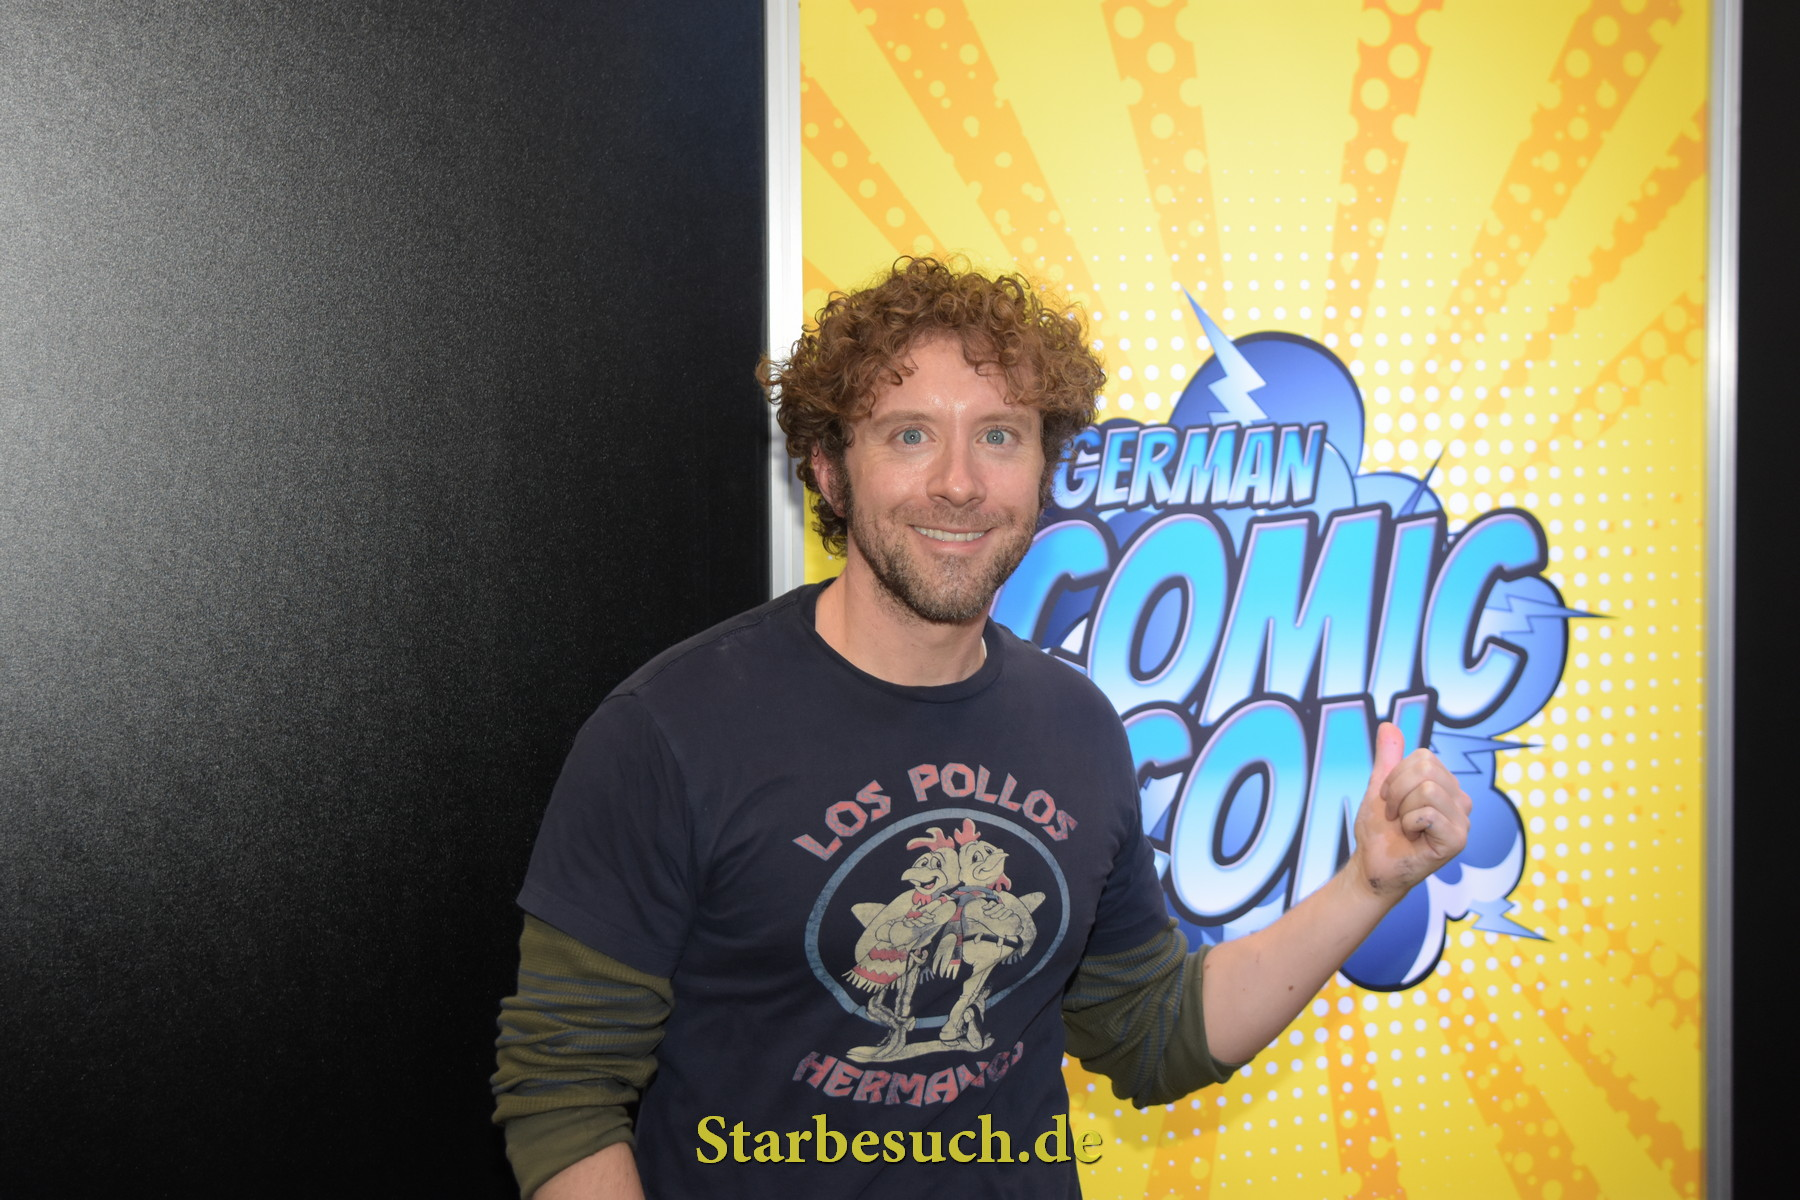 Dortmund, Germany - December 9th 2017: US Actor TJ Thyne (* 1975,  Dr. Jack Hodgins in the tv series Bones) at German Comic Con Dortmund. More than 30 celebrities attended the event.